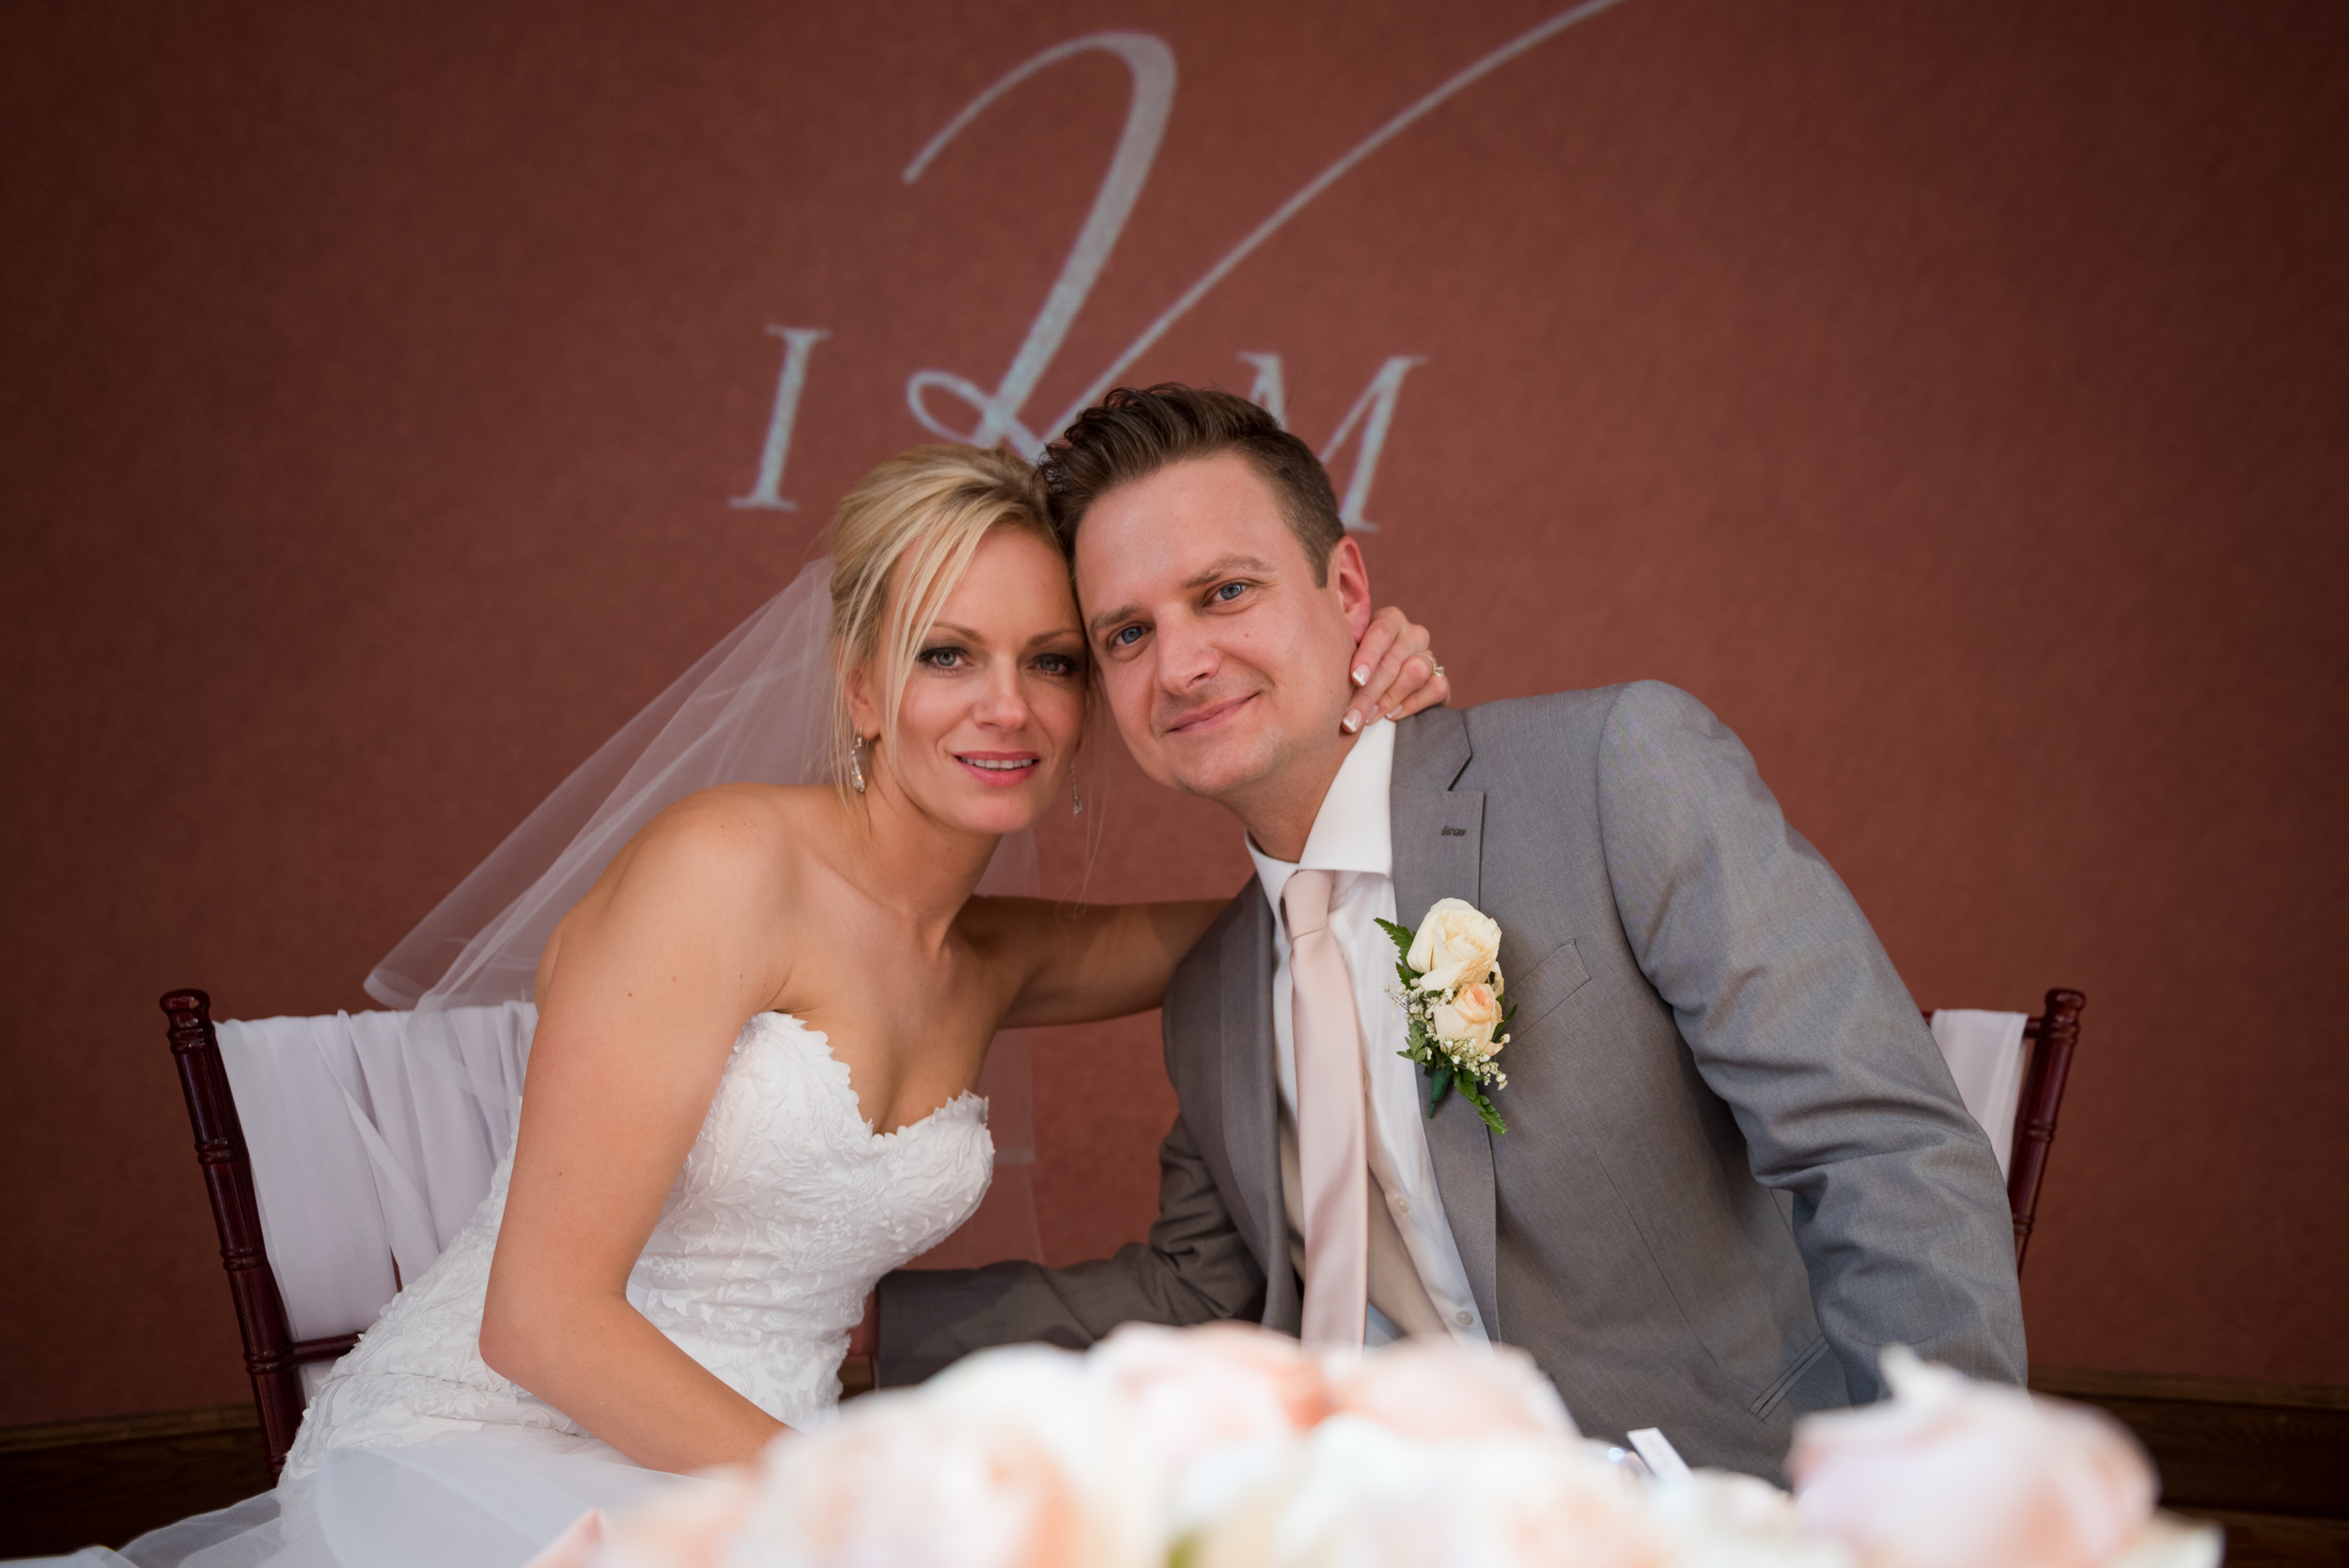 040Koper-Ekiert-Roanoke-Wedding-Virginia-Photographer-mattrossphotography.com.jpg